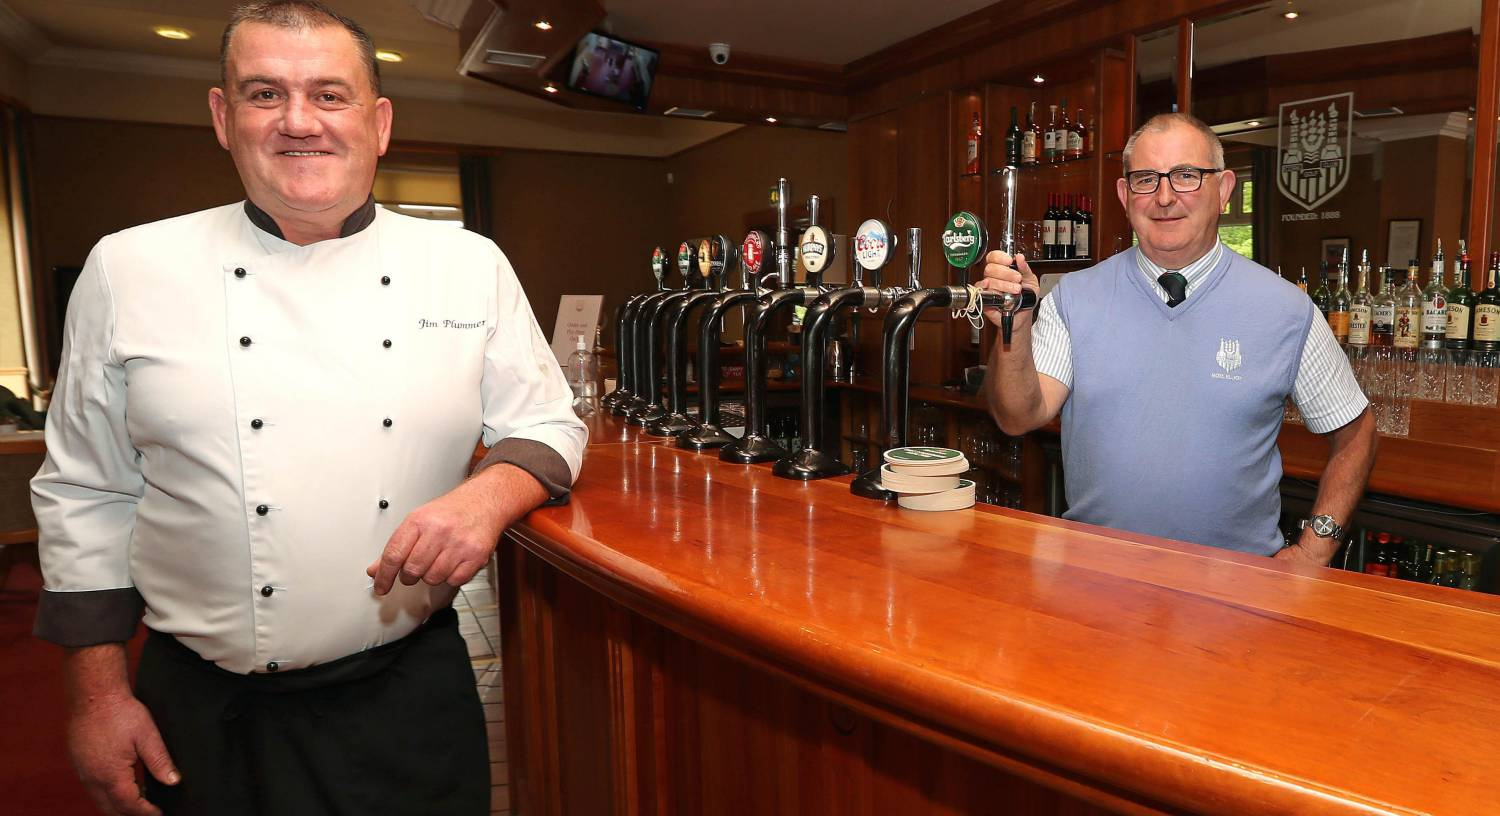 Timesheets fill up as golf clubhouses reopen